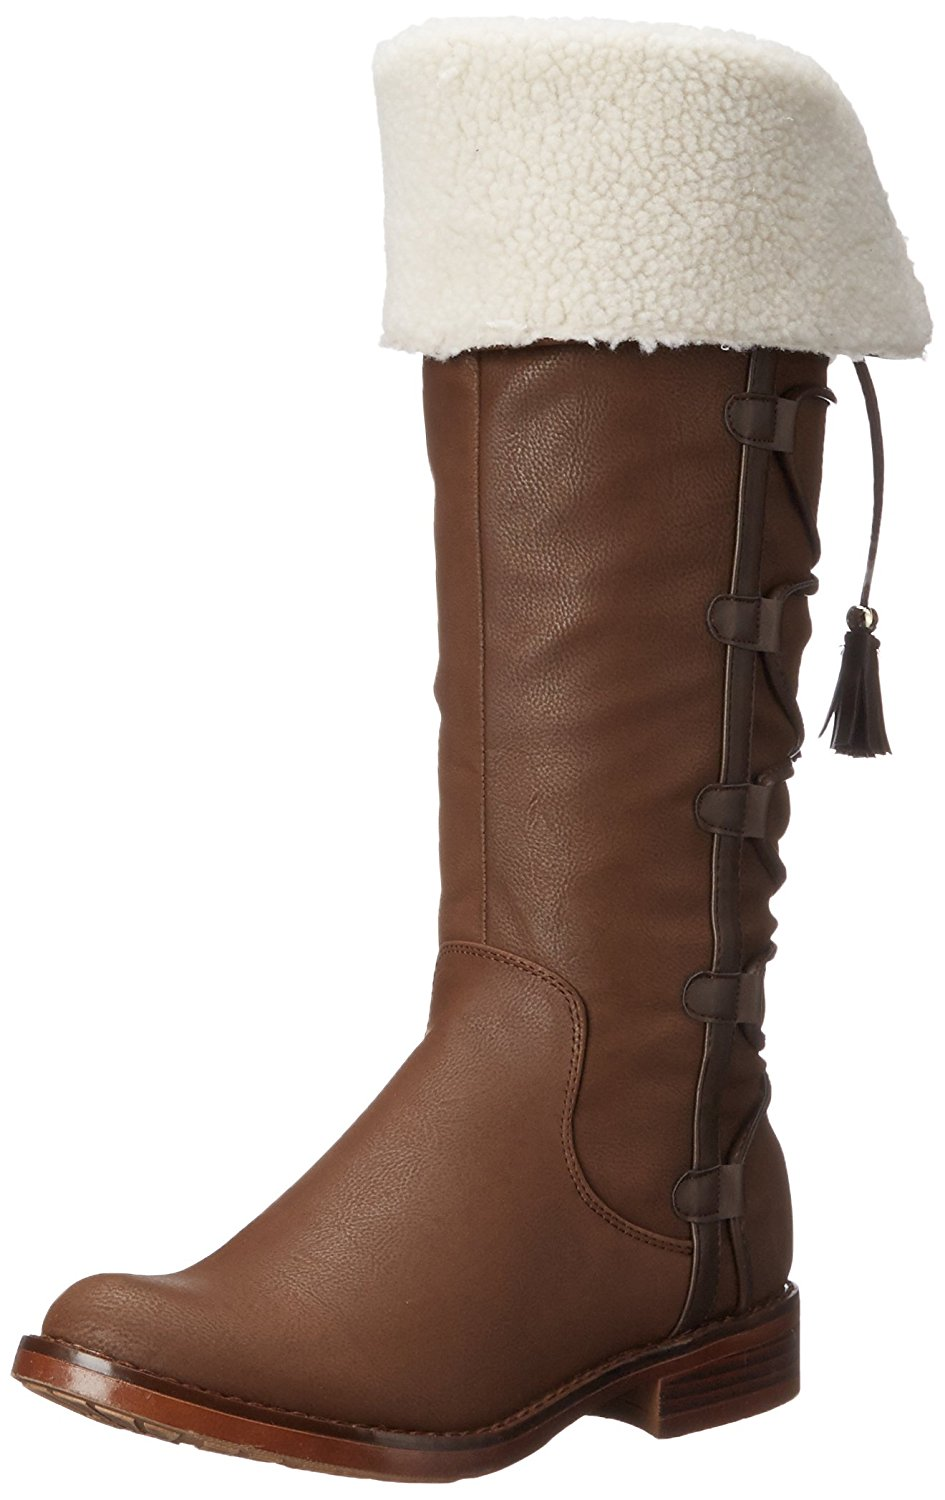 XOXO Women's Selby Winter Boot by Winter Boots